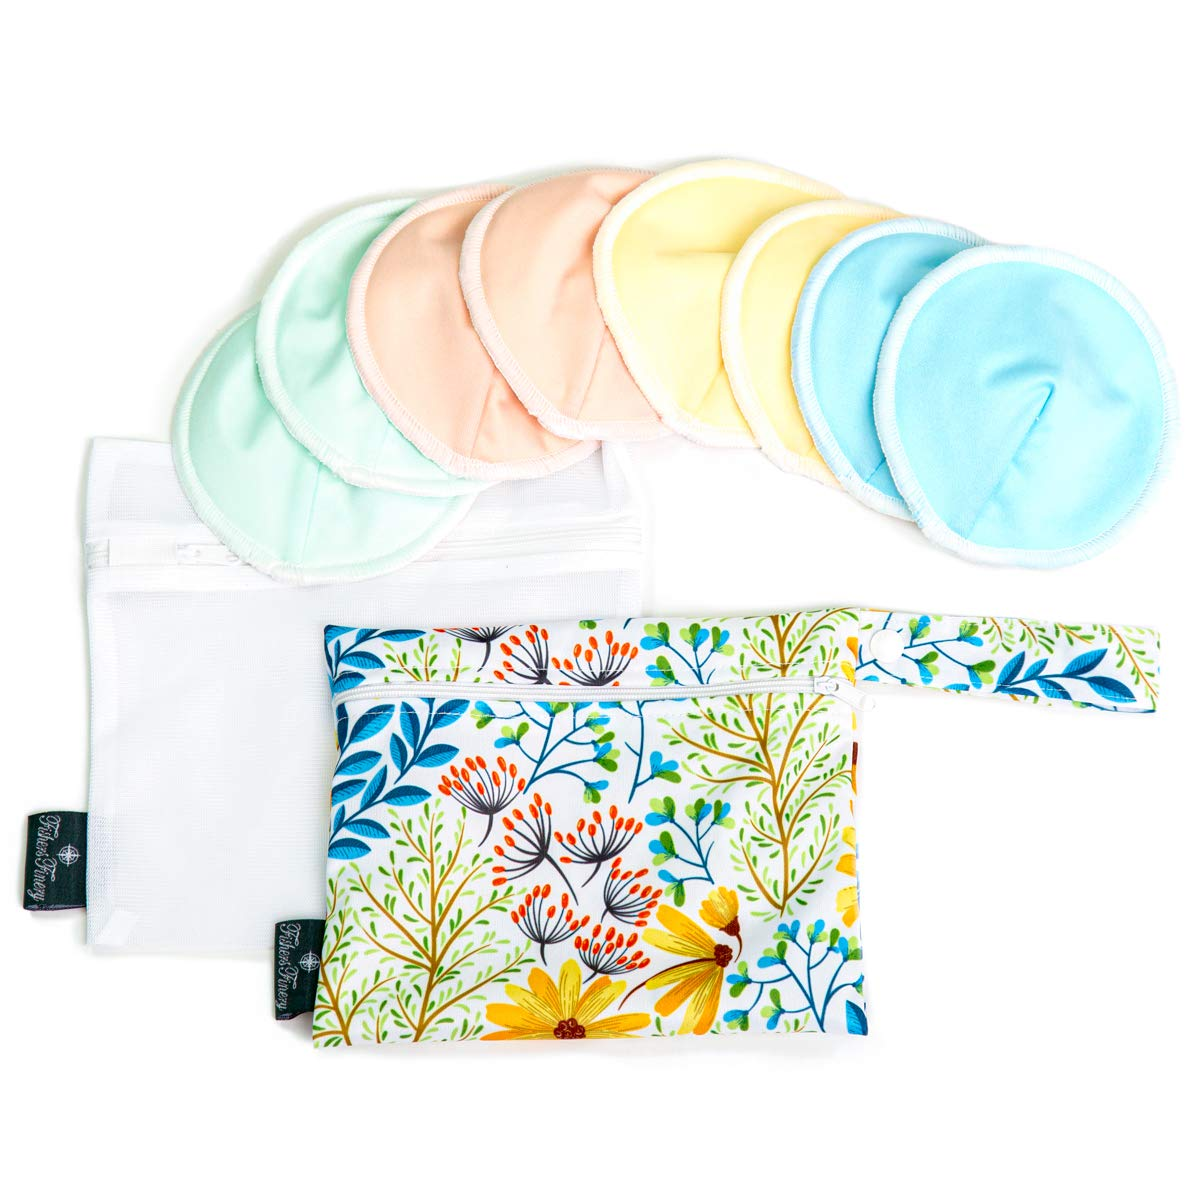 Fishers Finery Nursing Bra Pads Washable Reusable Leak Proof All Day Night(Set) by Fishers Finery